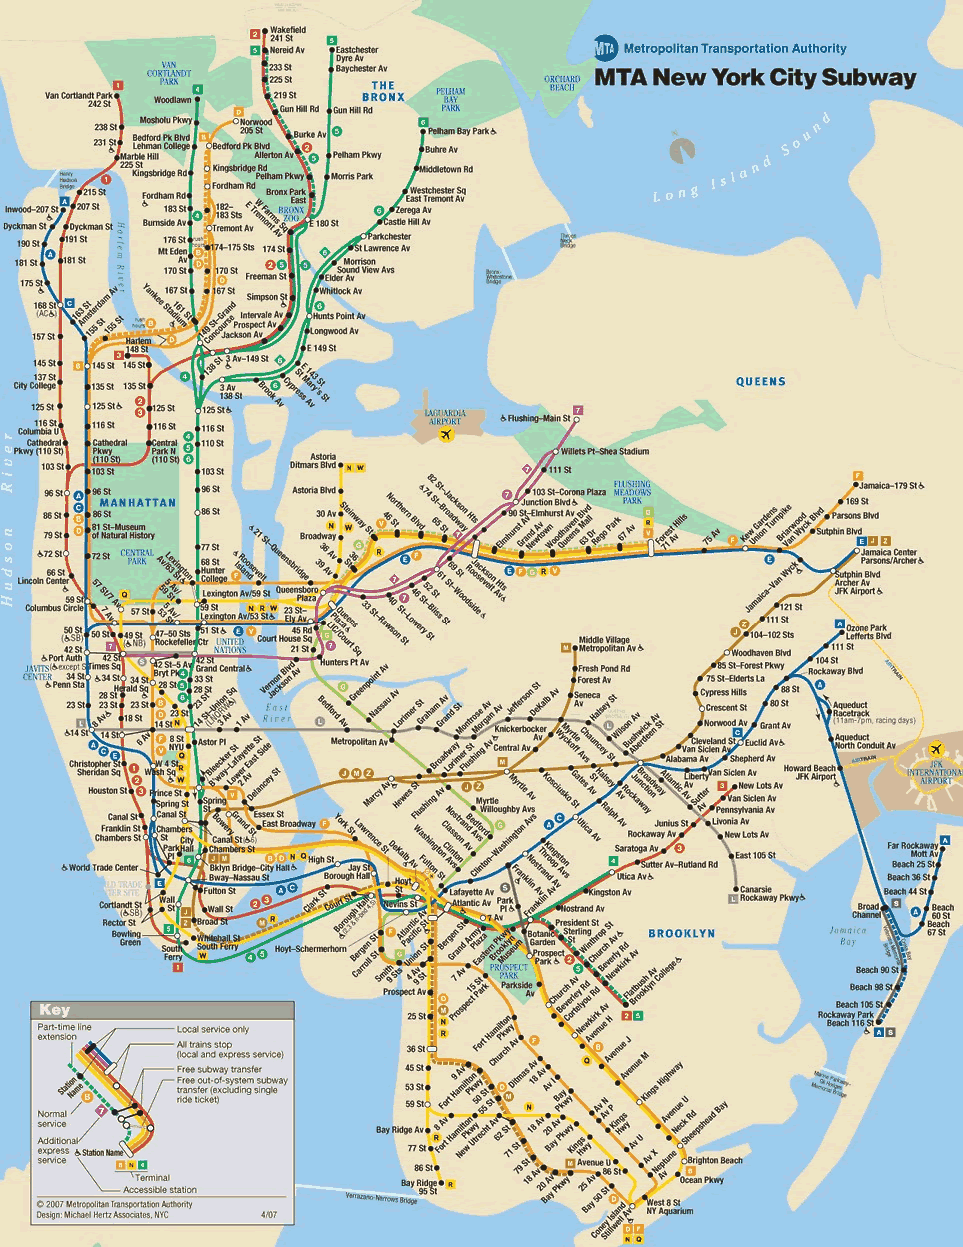 Large Ny Subway Map.Nyc Subway Map Large Image Viewer Askfoxes Com